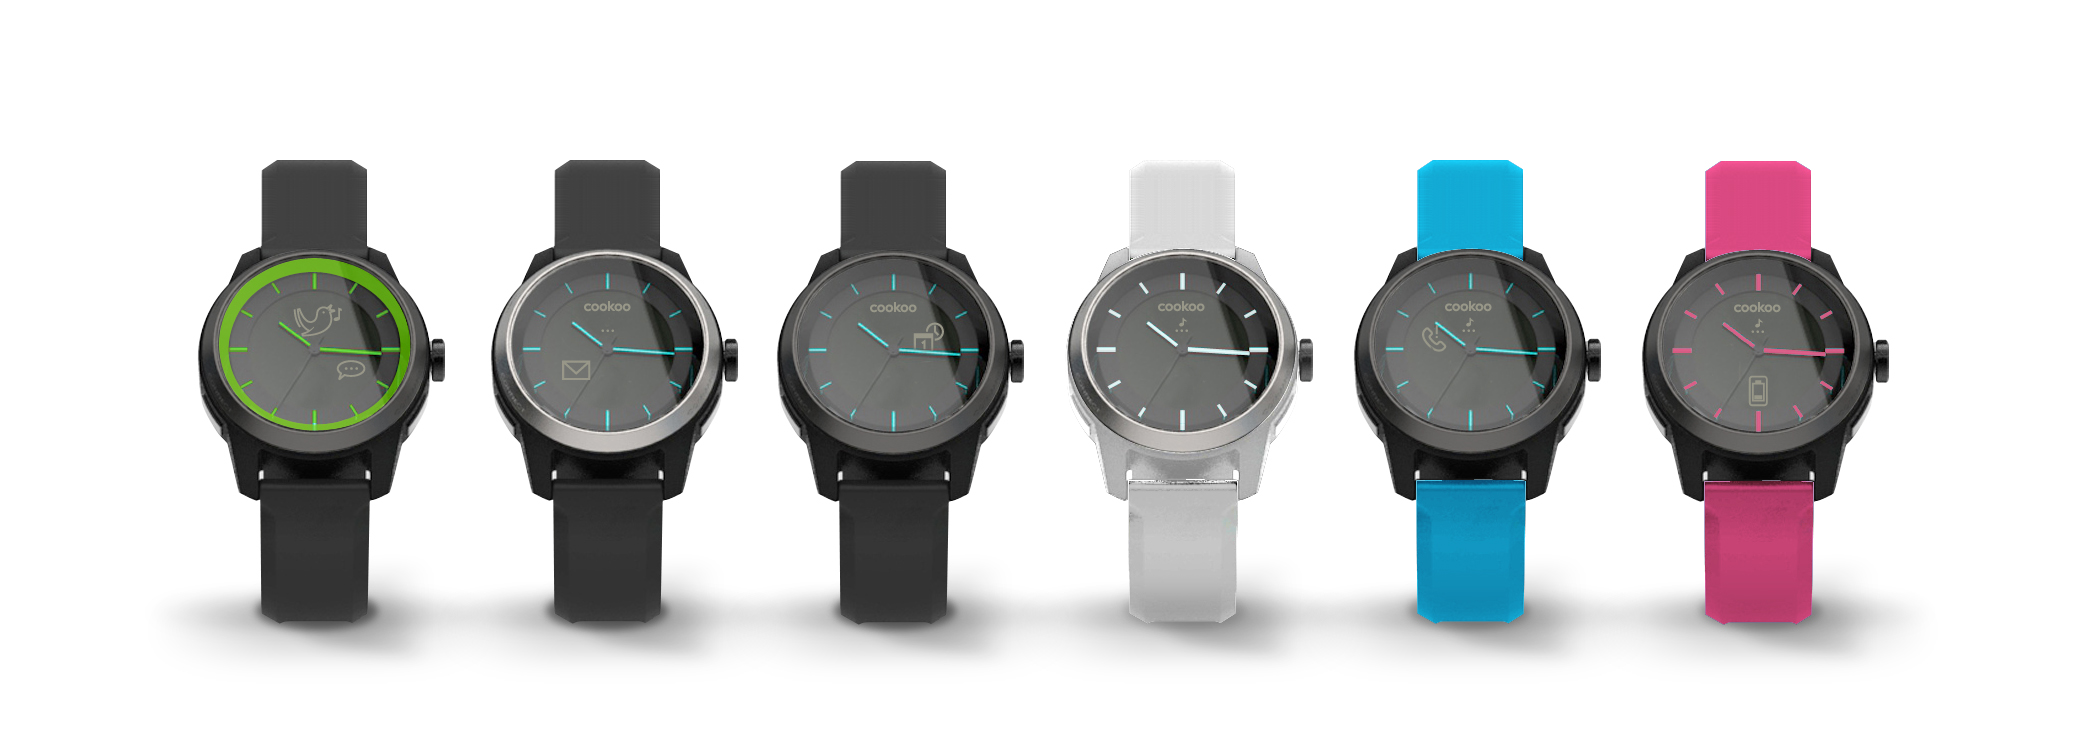 Cookoo Smart Watch | Tic Watches